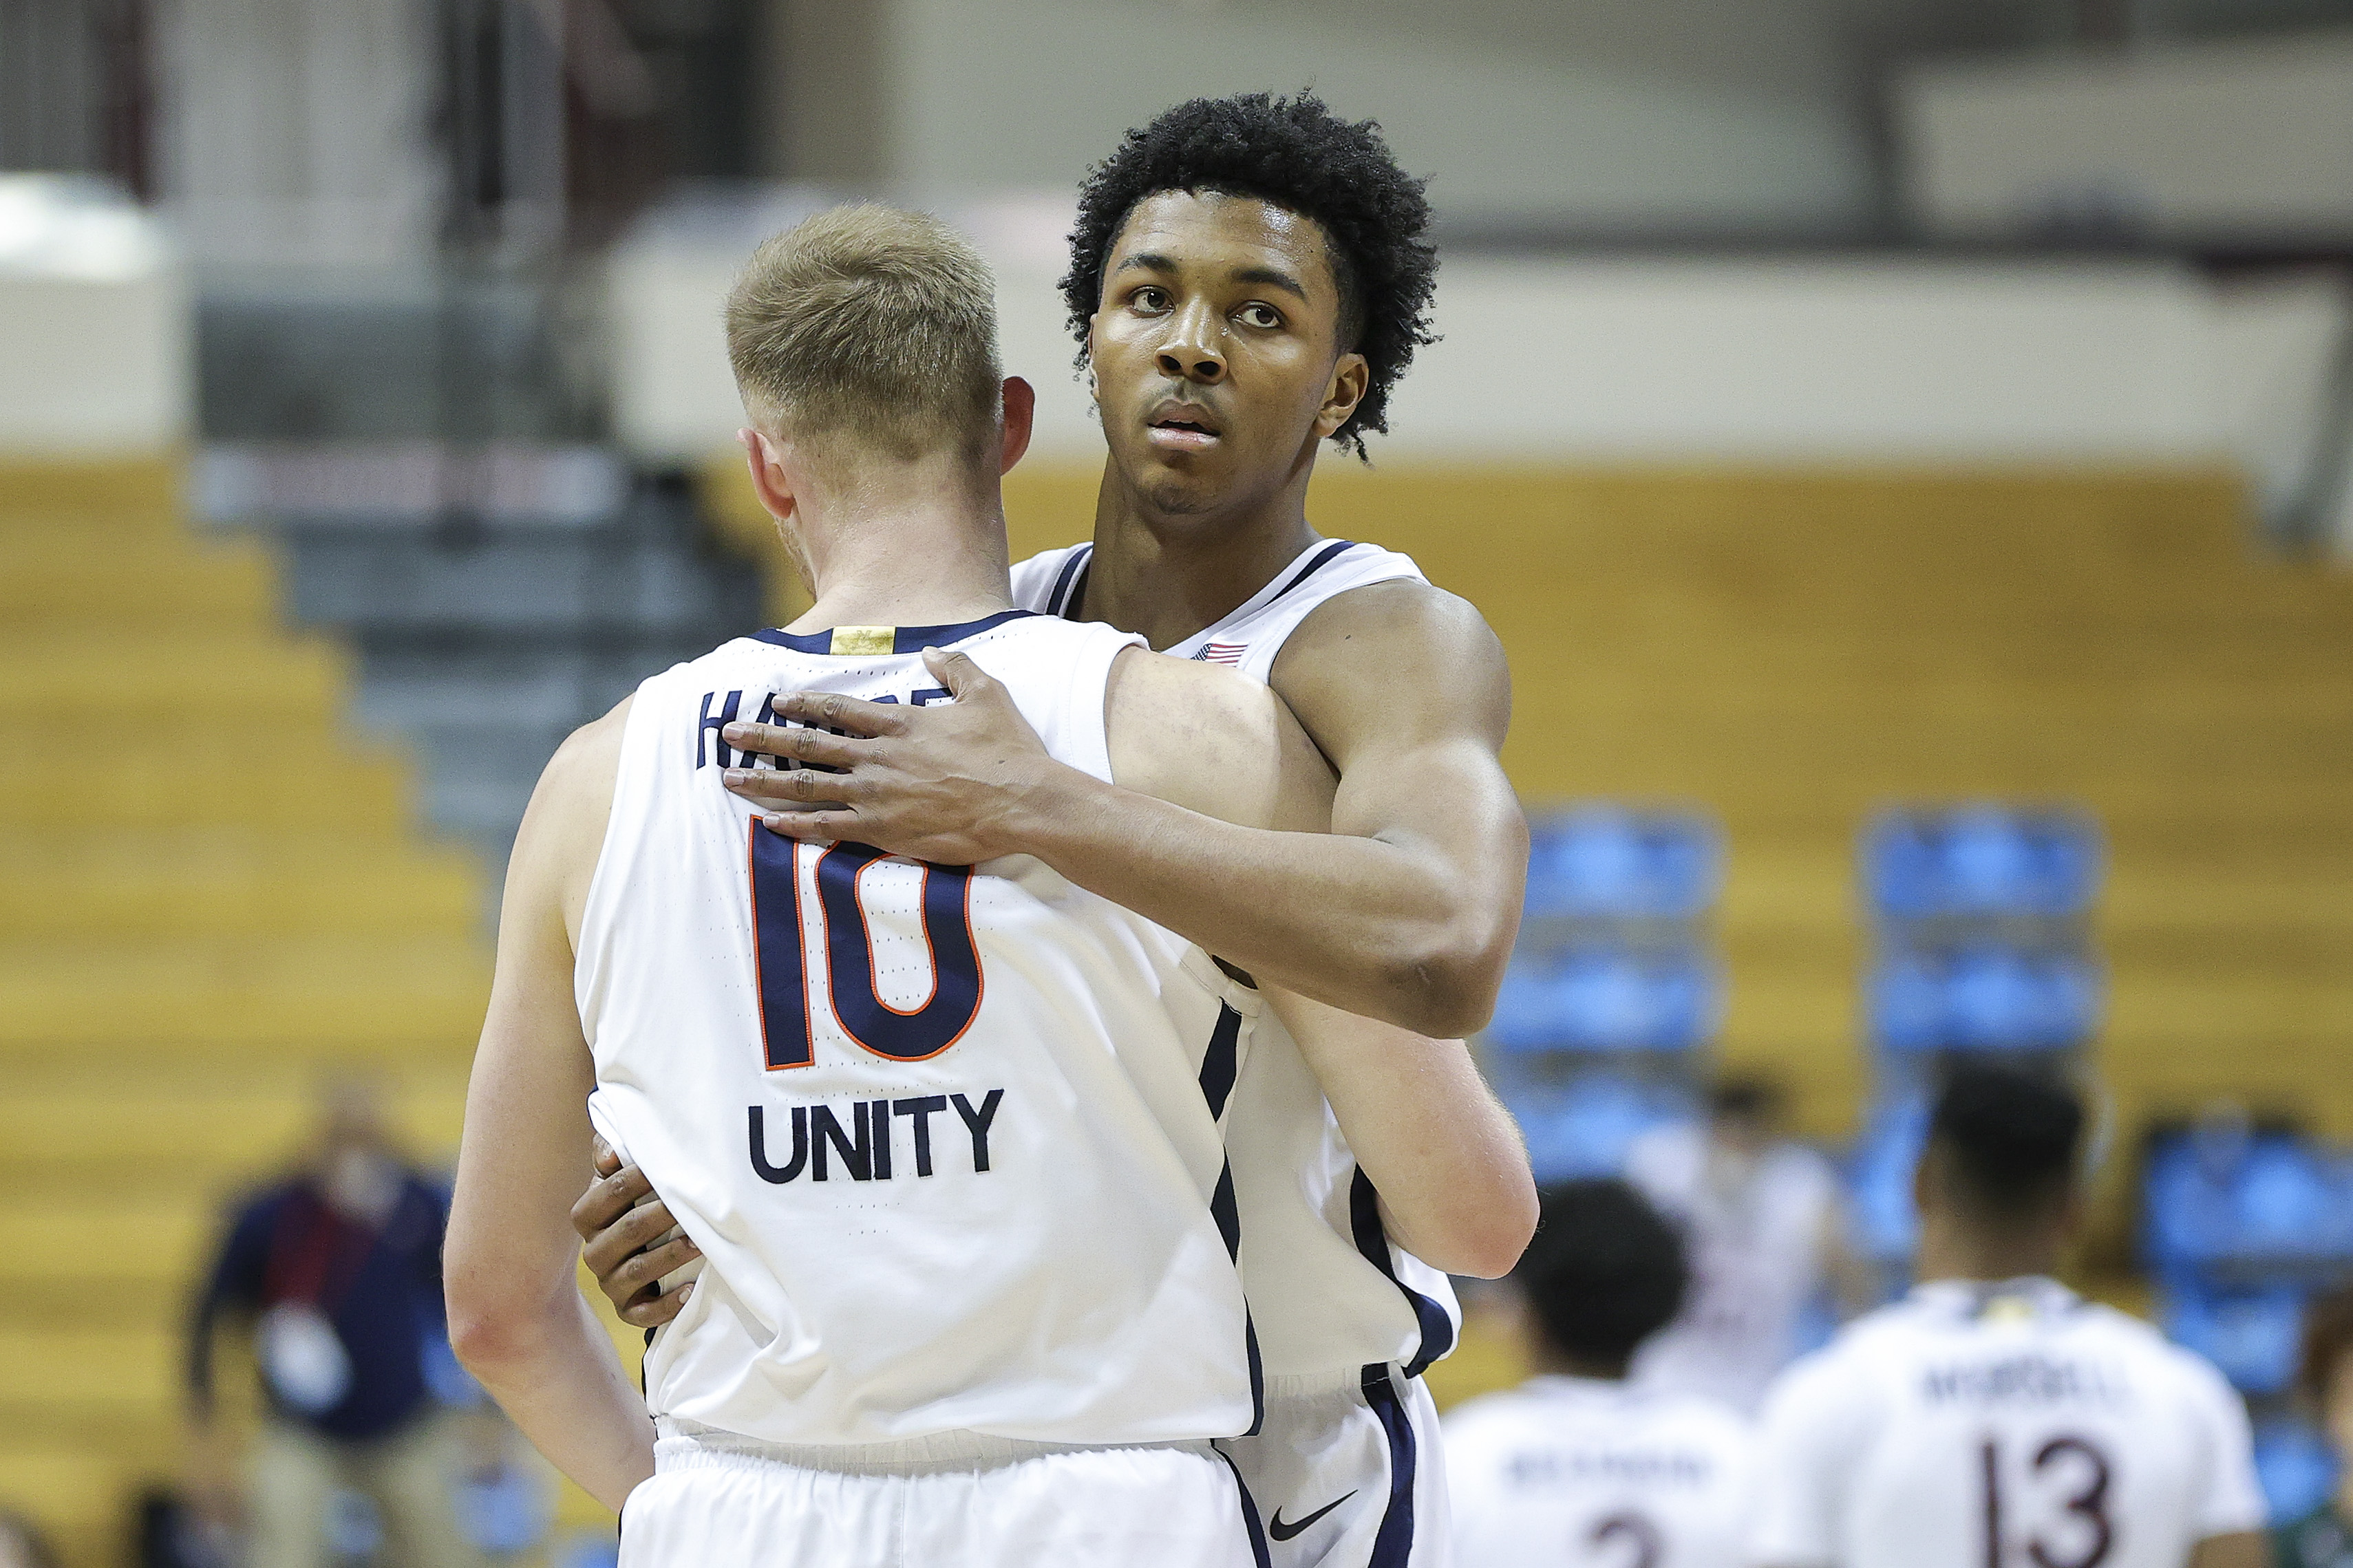 Sam Hauser and Trey Murphy III of the Virginia Cavaliers celebrate a basket against the Ohio Bobcats in the first round game of the 2021 NCAA Men's Basketball Tournament at Assembly Hall on March 20, 2021 in Bloomington, Indiana.